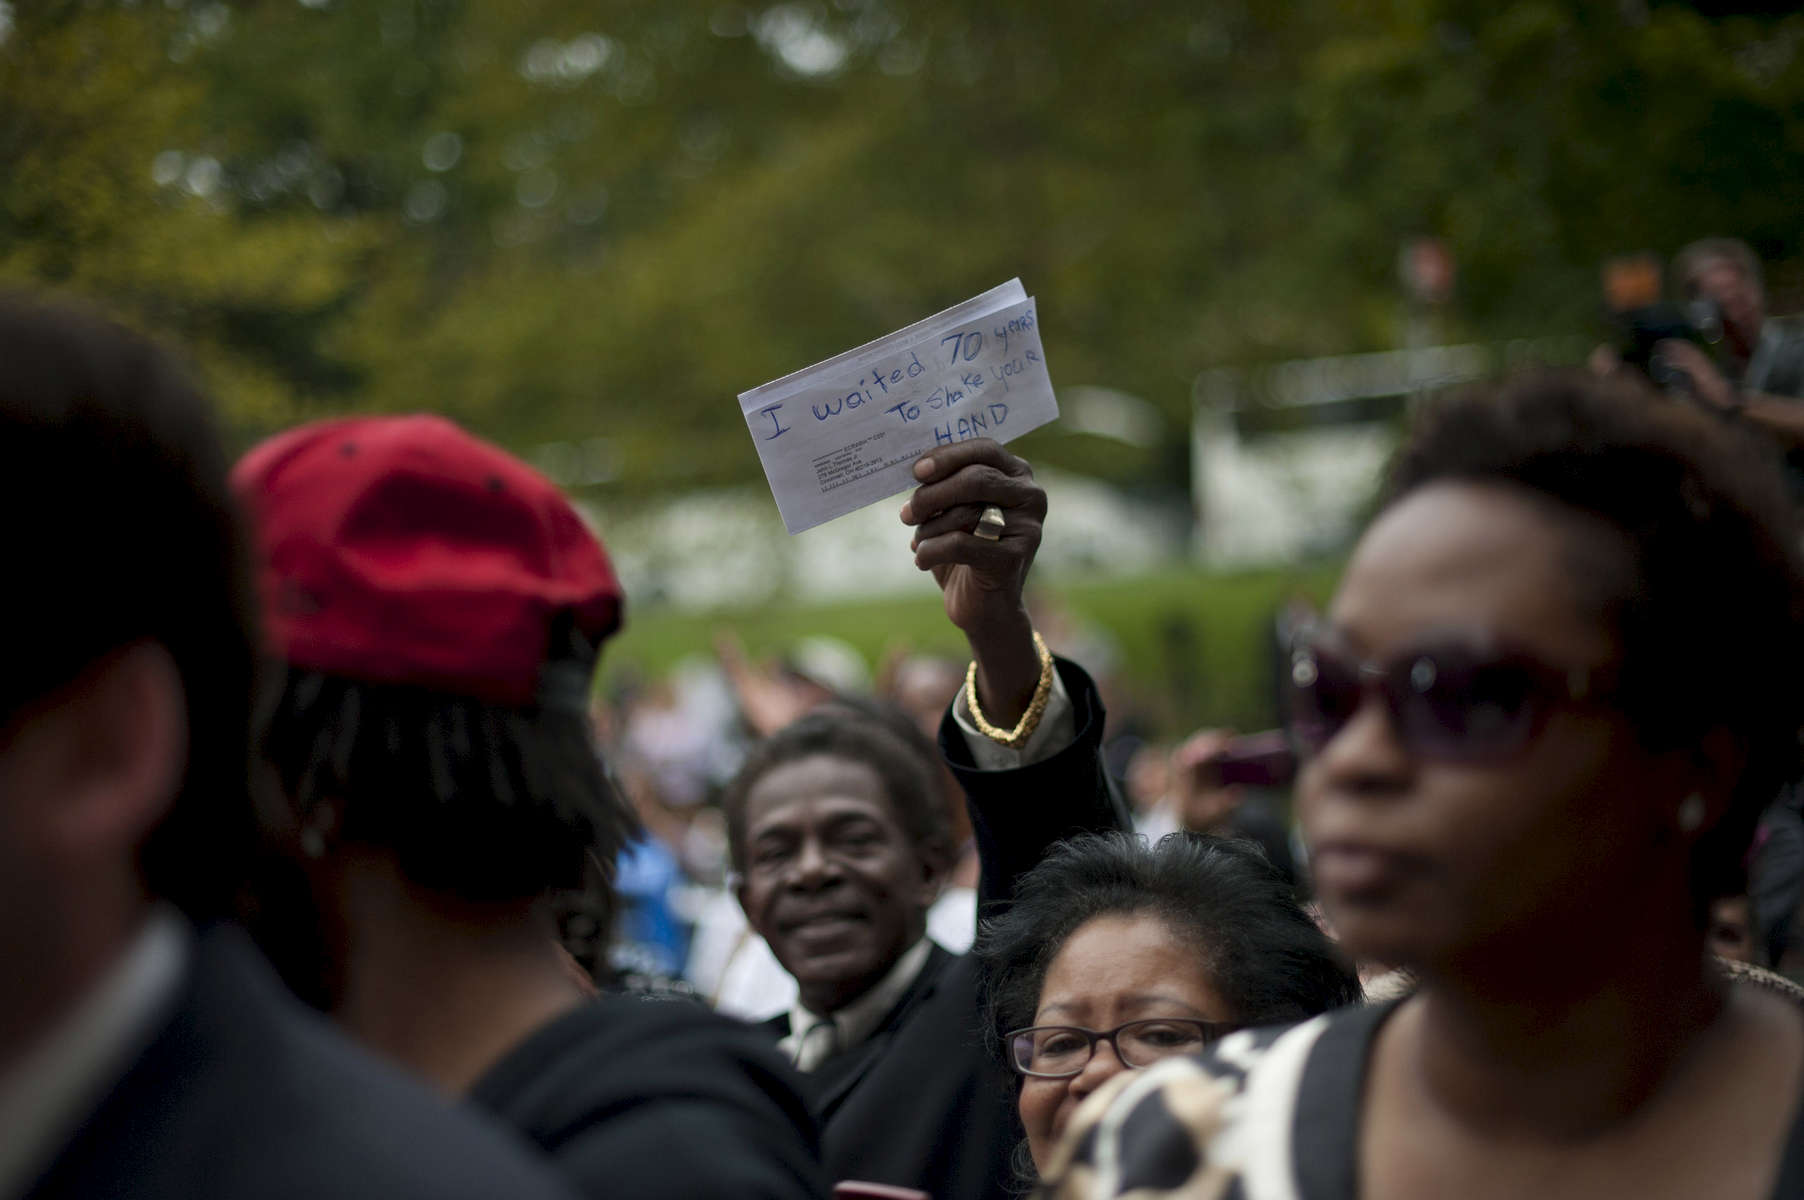 September 17, 2012 - Mt. Adams, OH: An elderly man holds up a handwritten sign reading {quote}I waited 70 years to shake your hand{quote}  during an Obama campaign event in Ohio. (Scout Tufankjian for Obama for America/Polaris)